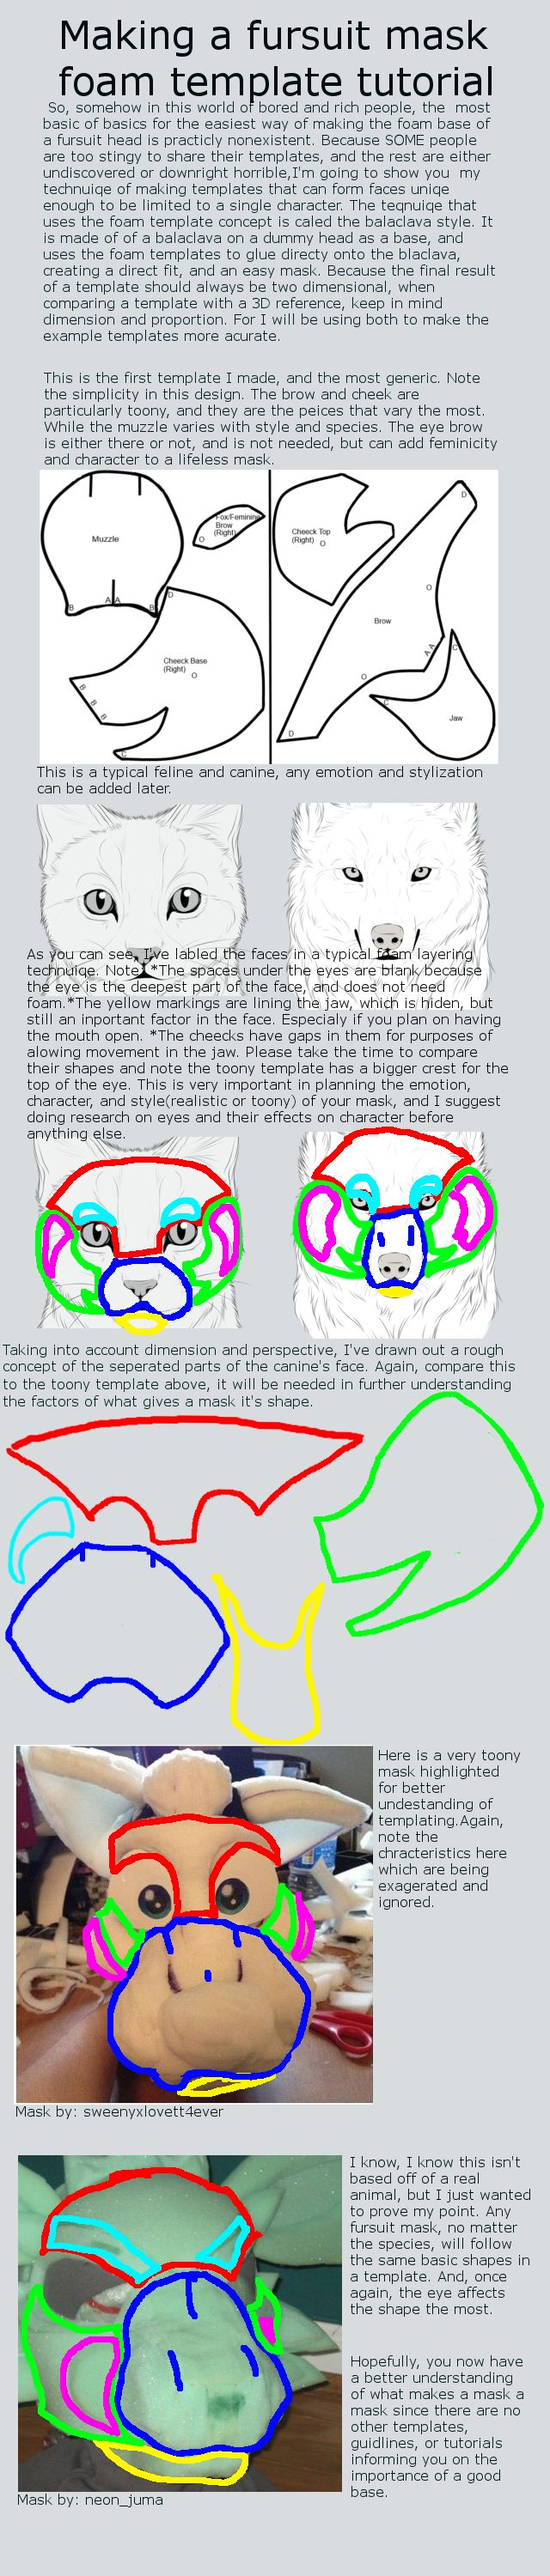 Making your own fursuit mask template tutorial by IAmNotAPegasus on deviantART